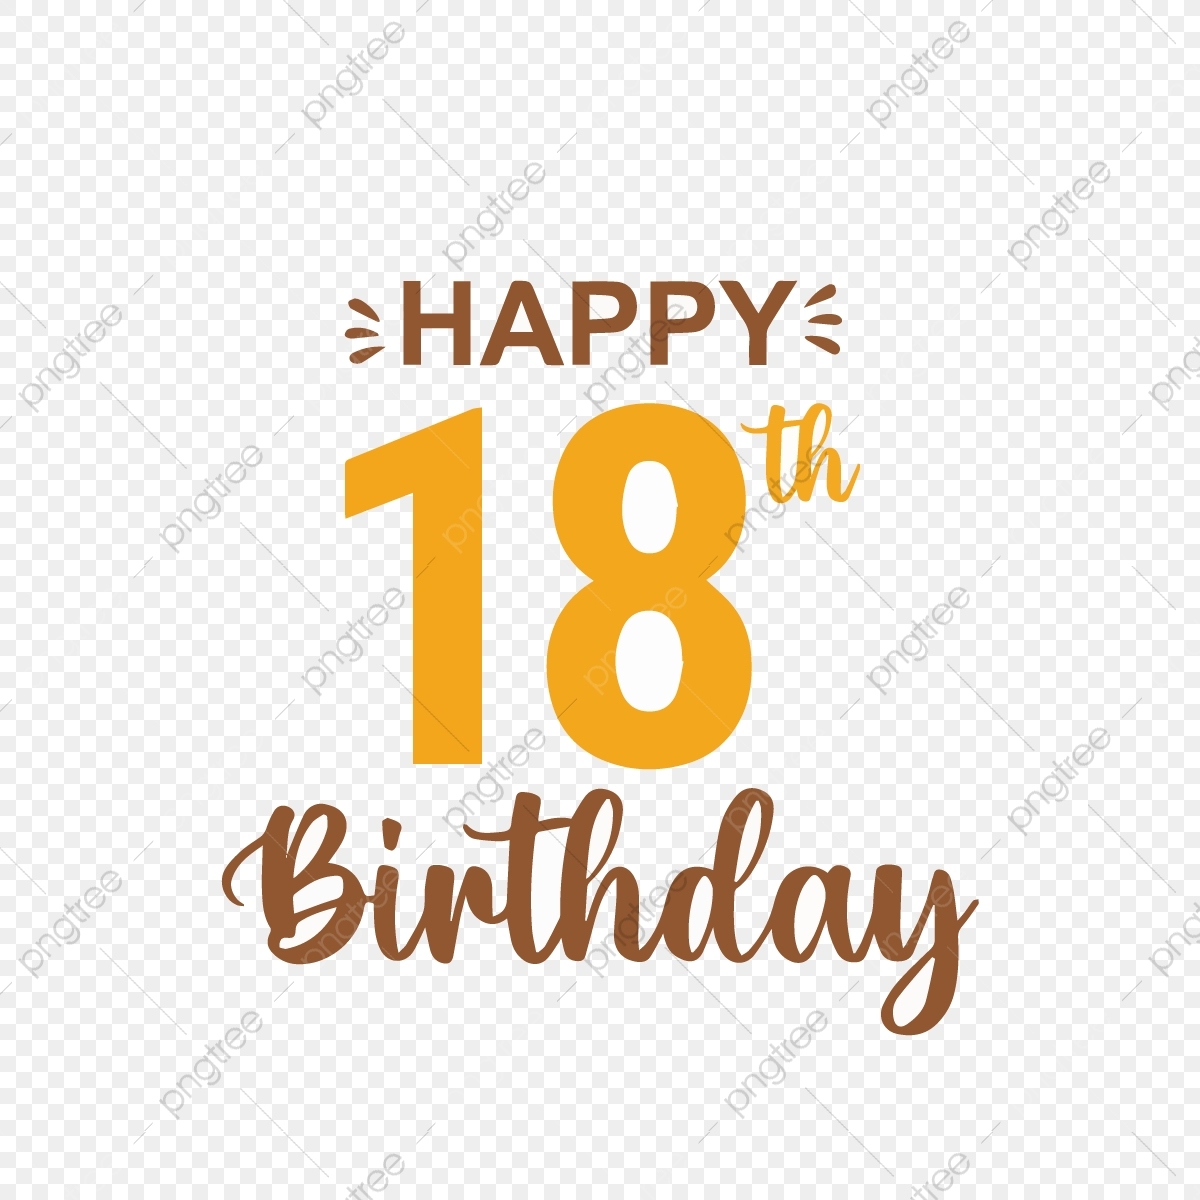 https pngtree com freepng happy 18th birthday wishes 5662965 html